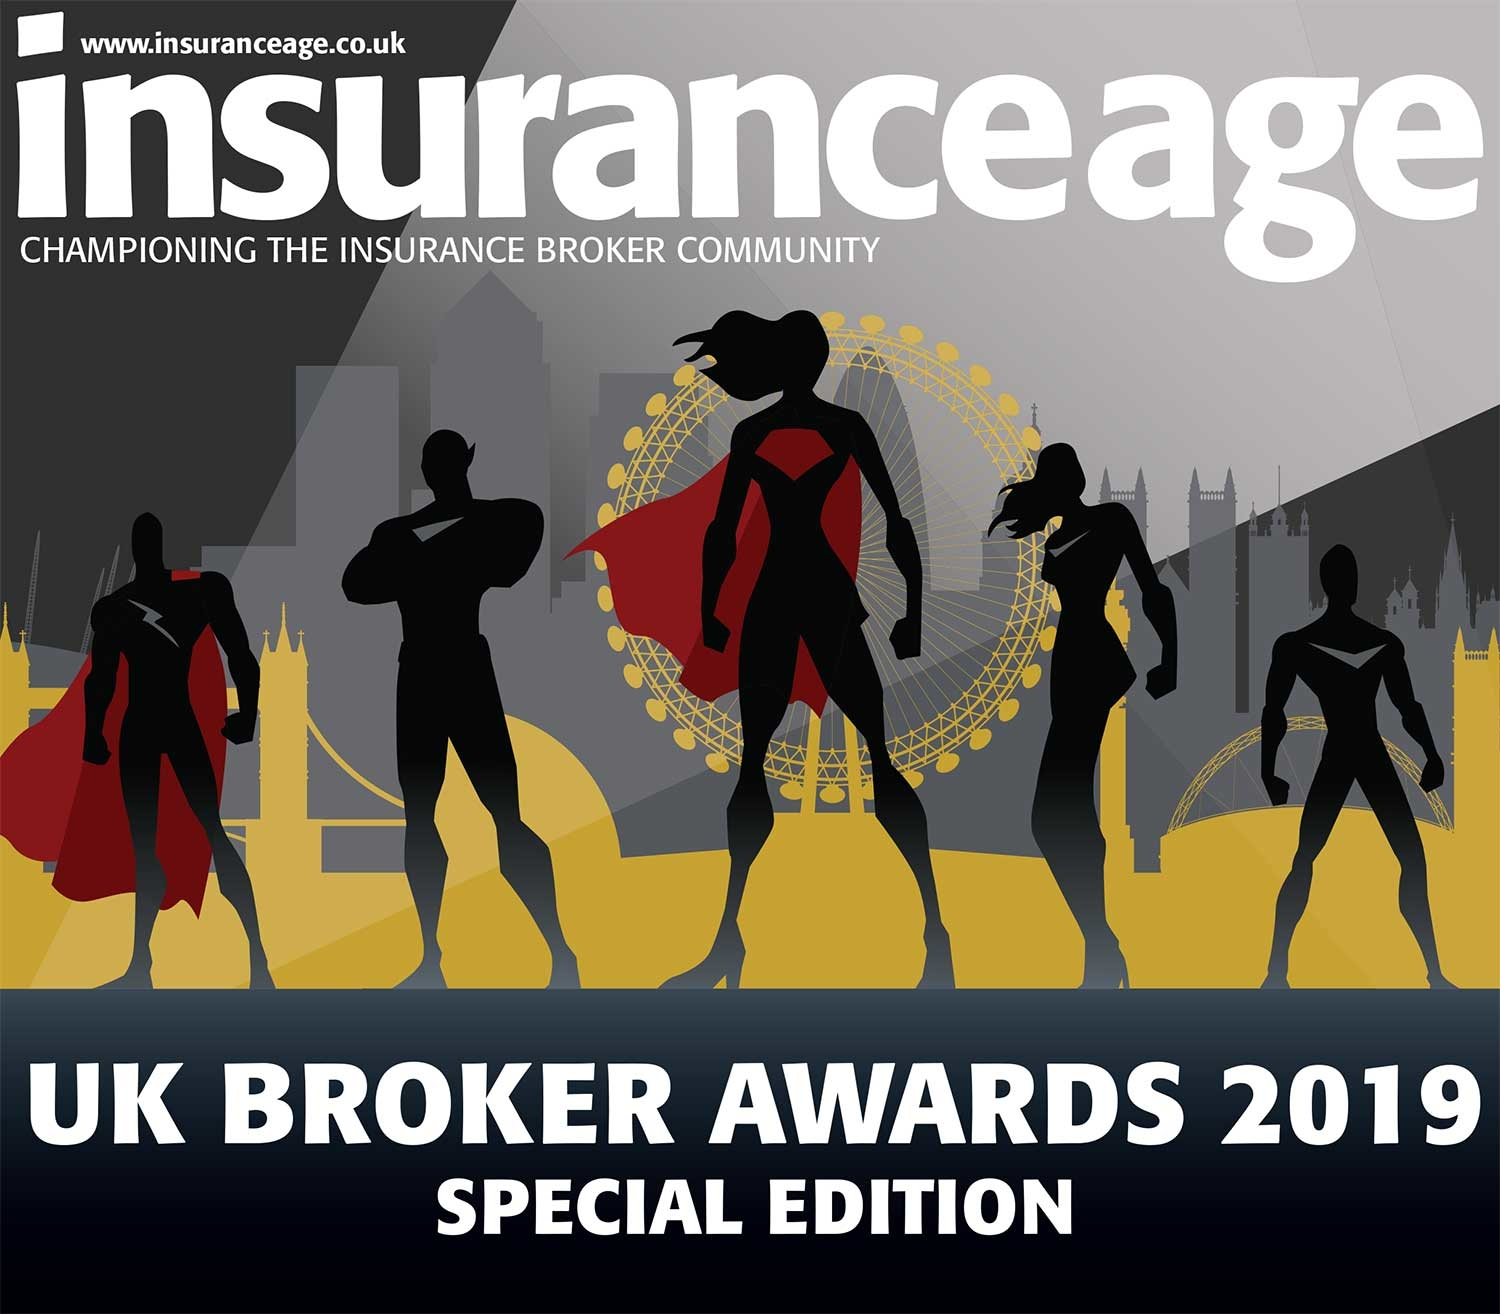 UK Broker Awards cover 2019